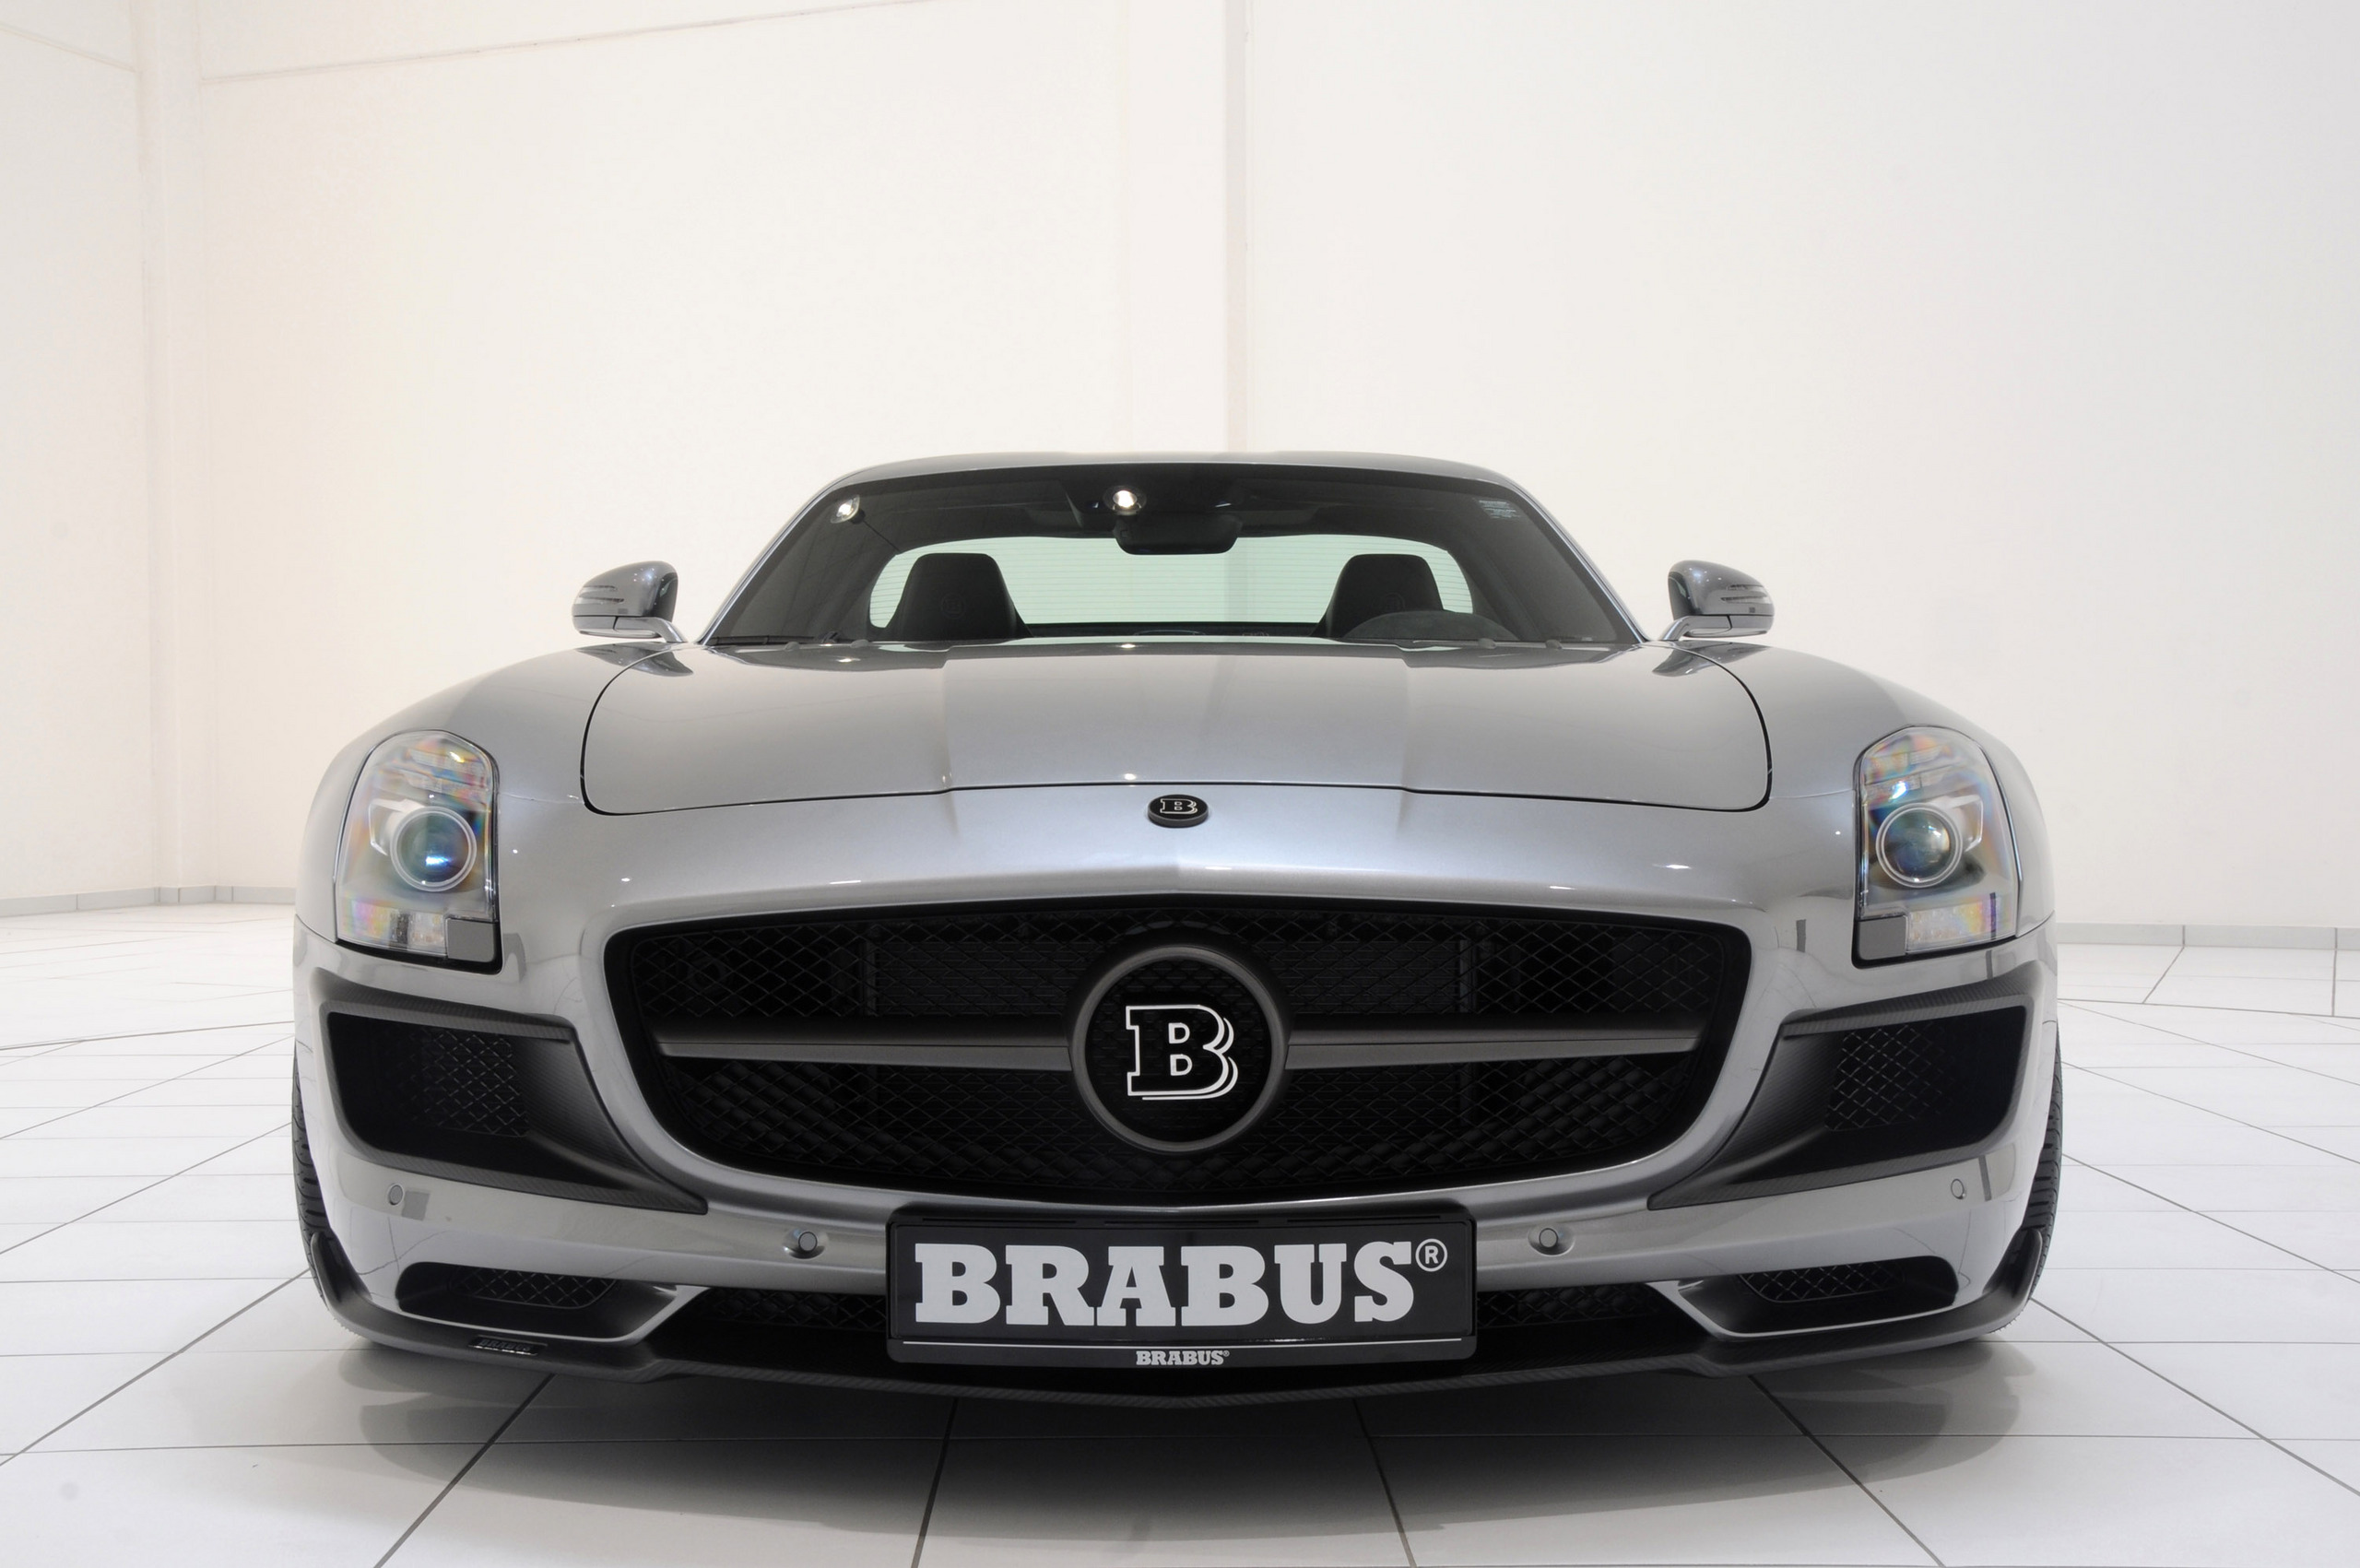 Exotic Cars images Brabus 700 Biturbo HD wallpaper and background ...